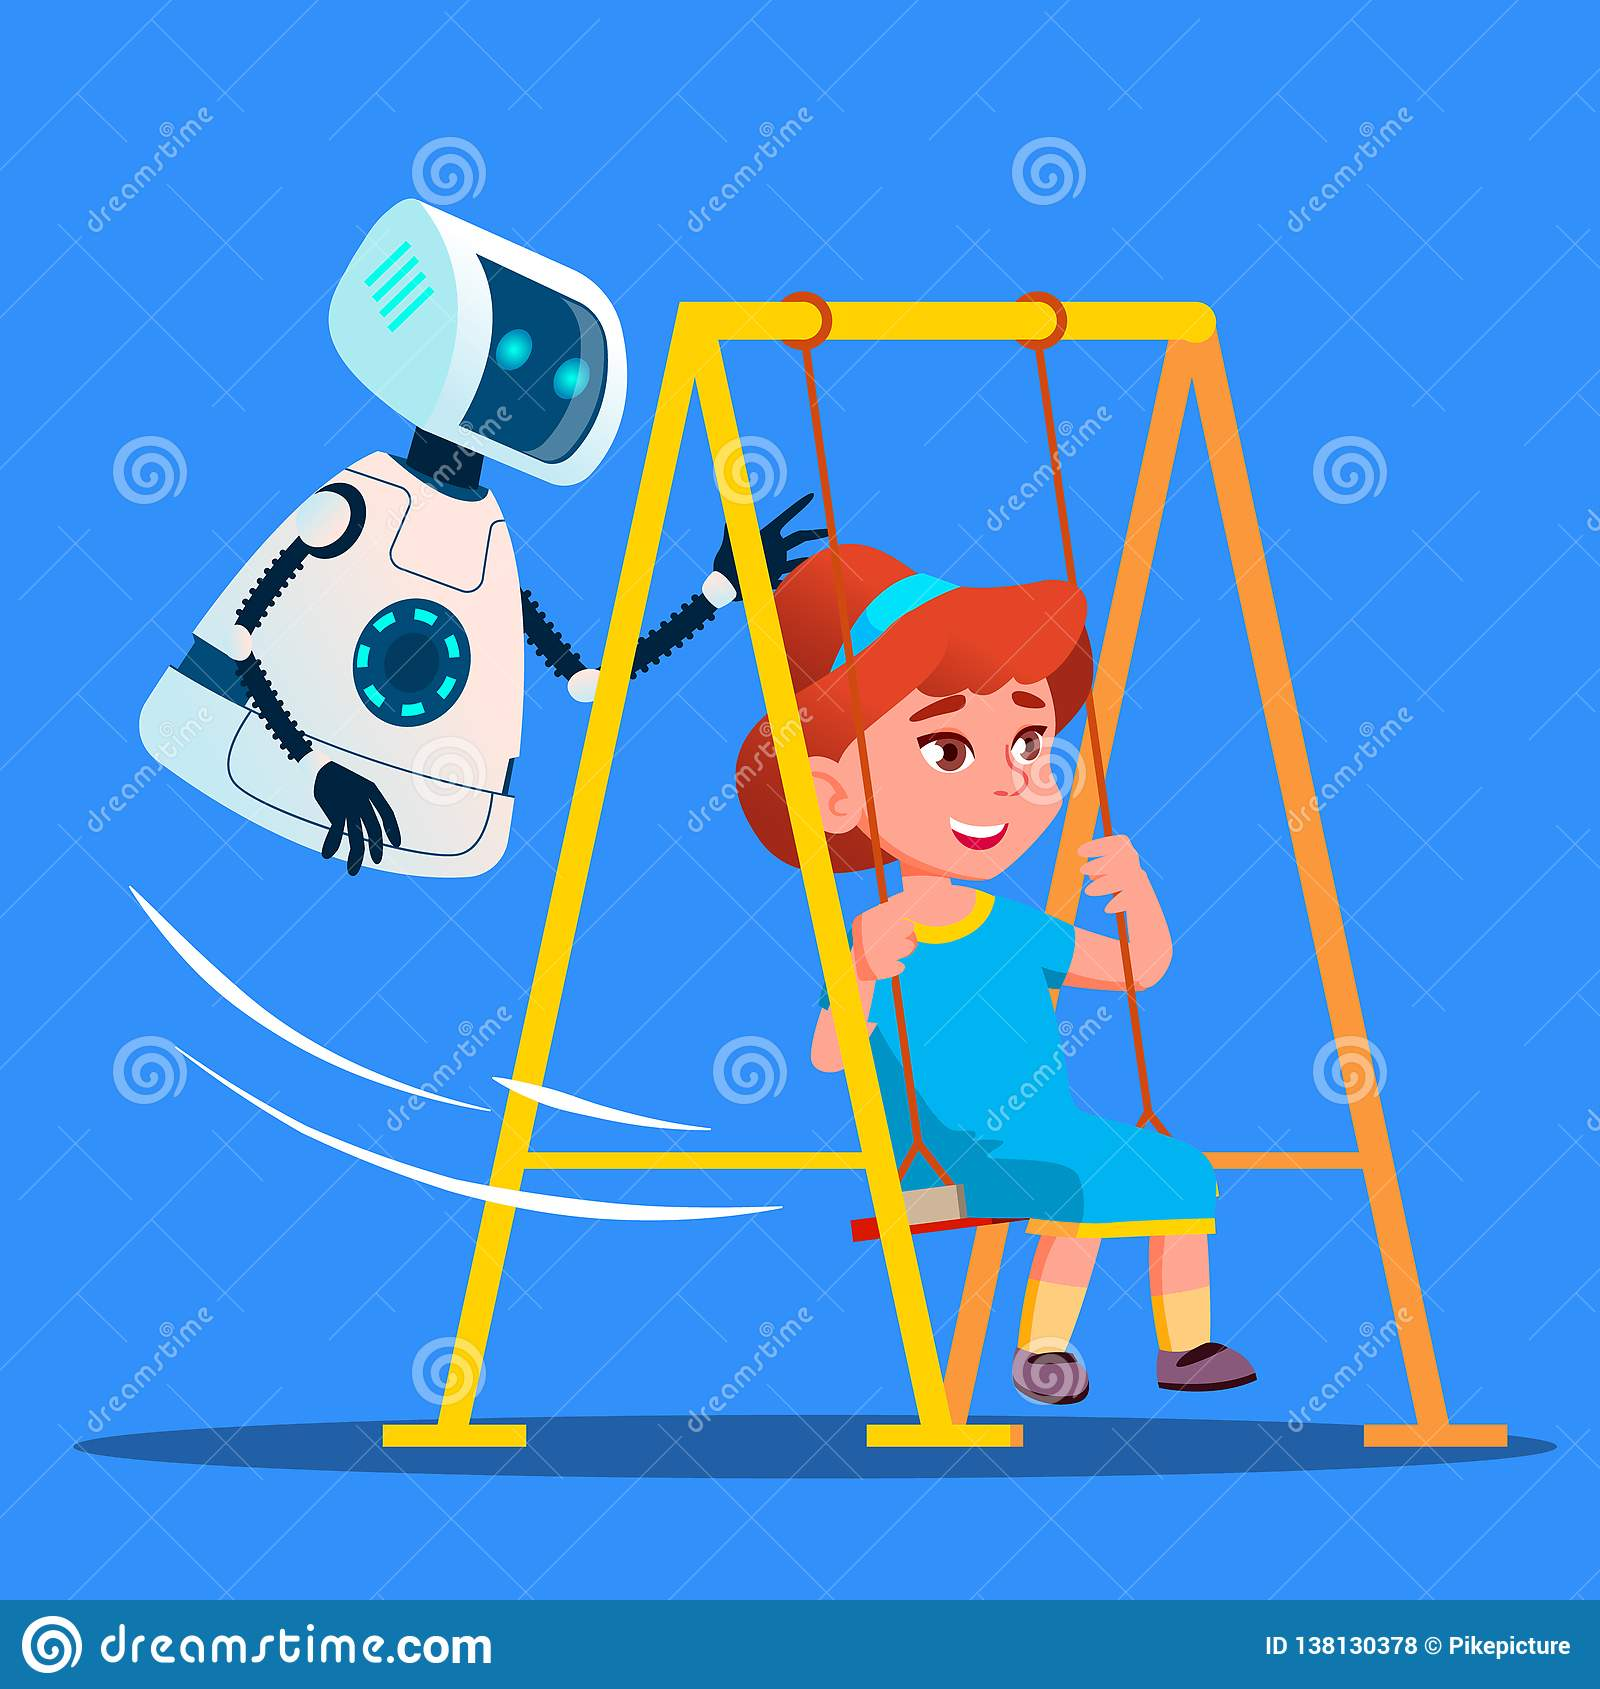 Robot Swinging Little Girl On Swing On Playground Vector. Isolated Illustration